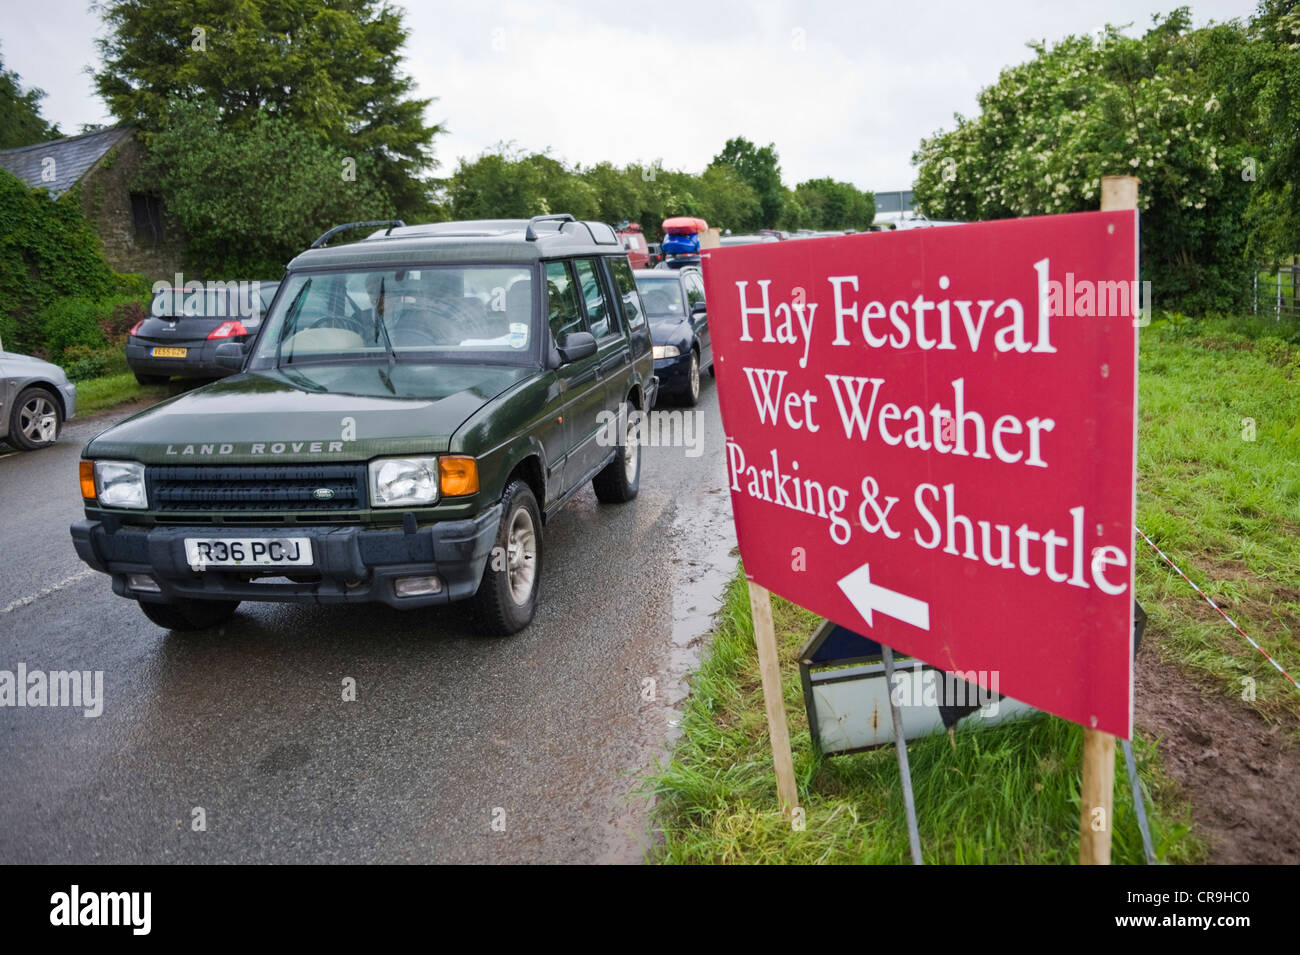 Wet weather car park signage at The Telegraph Hay Festival 2012, Hay-on-Wye, Powys, Wales, UK - Stock Image